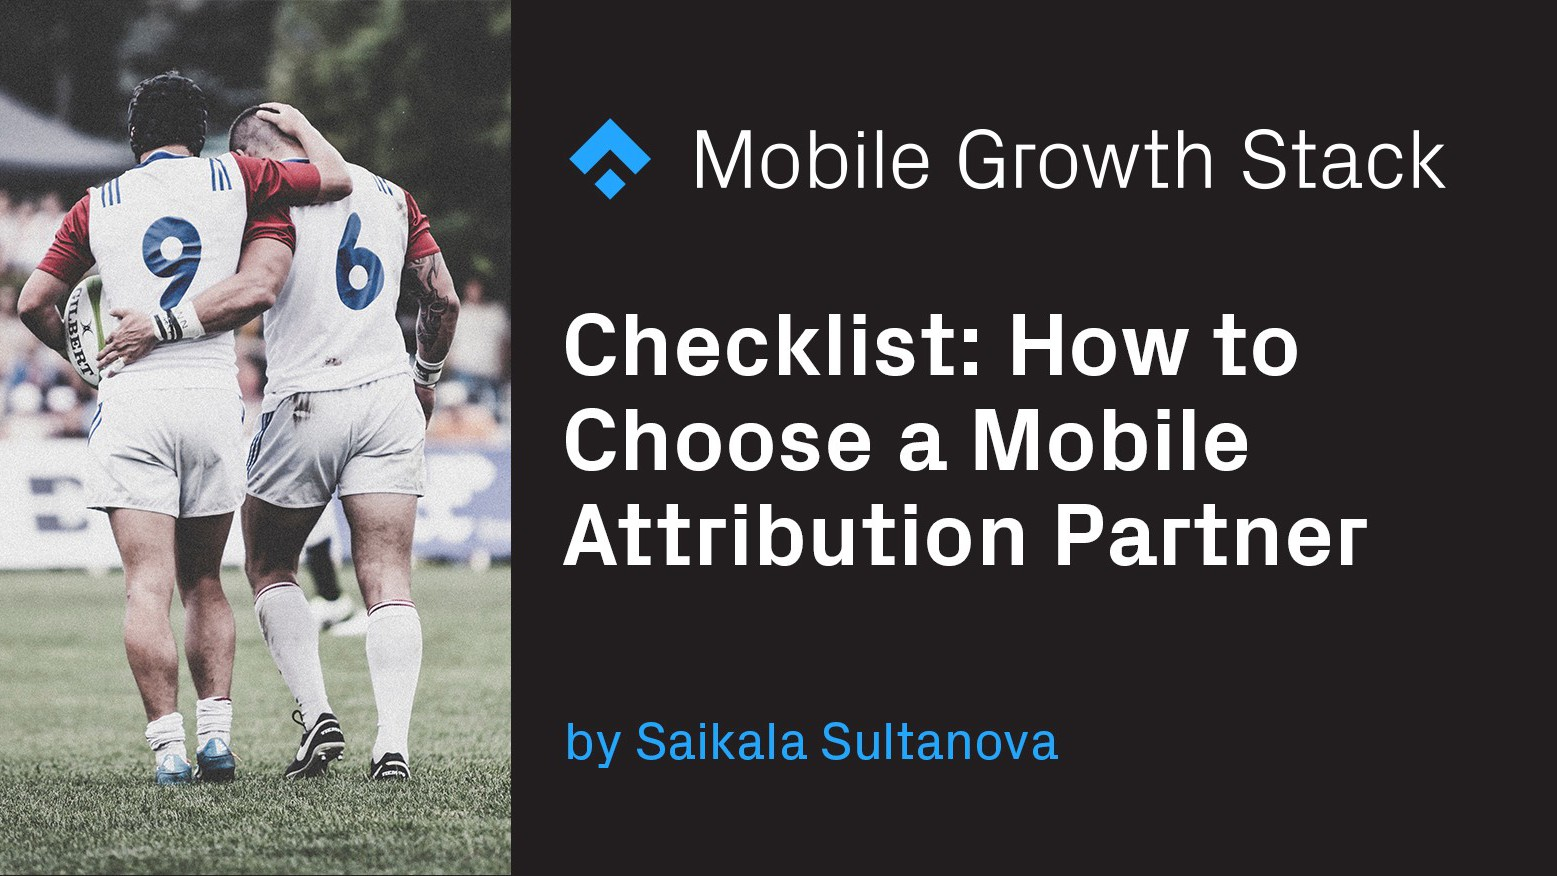 Checklist- How to Choose a Mobile Attribution Partner